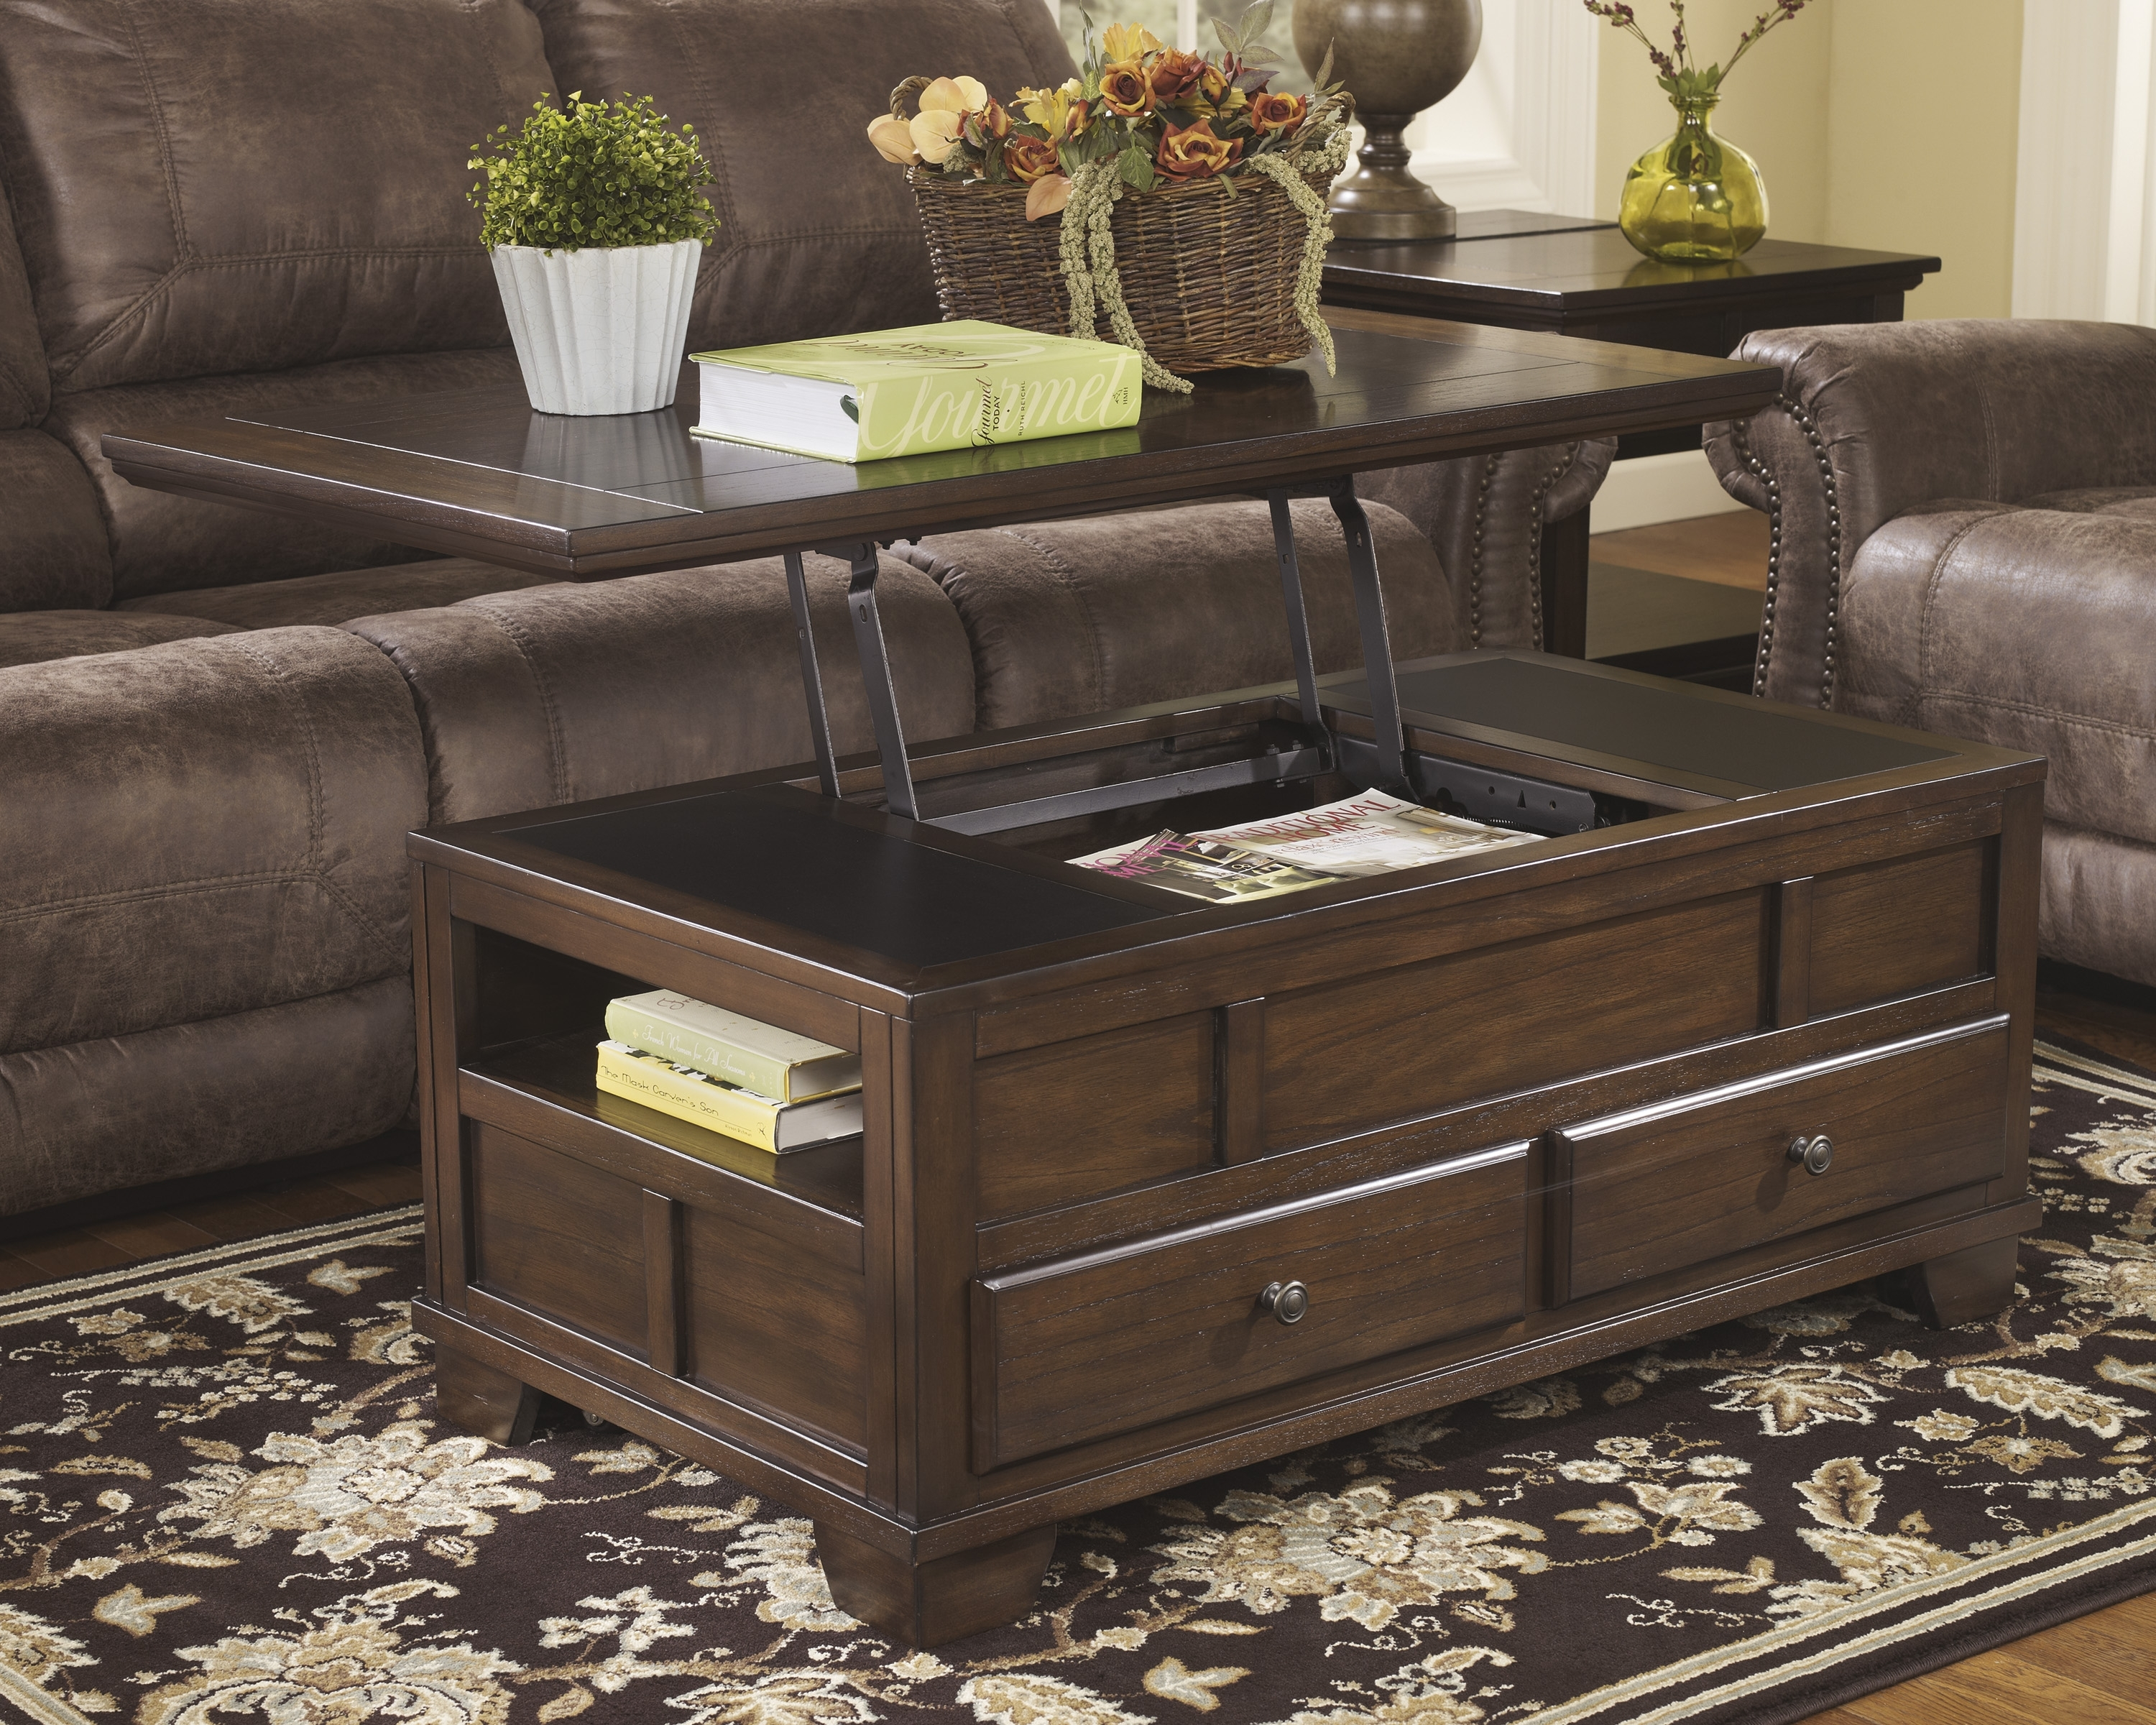 Lift Top Coffee Table Ashley Furniture — Photo Designs : Beautiful throughout Chiseled Edge Coffee Tables (Image 13 of 30)